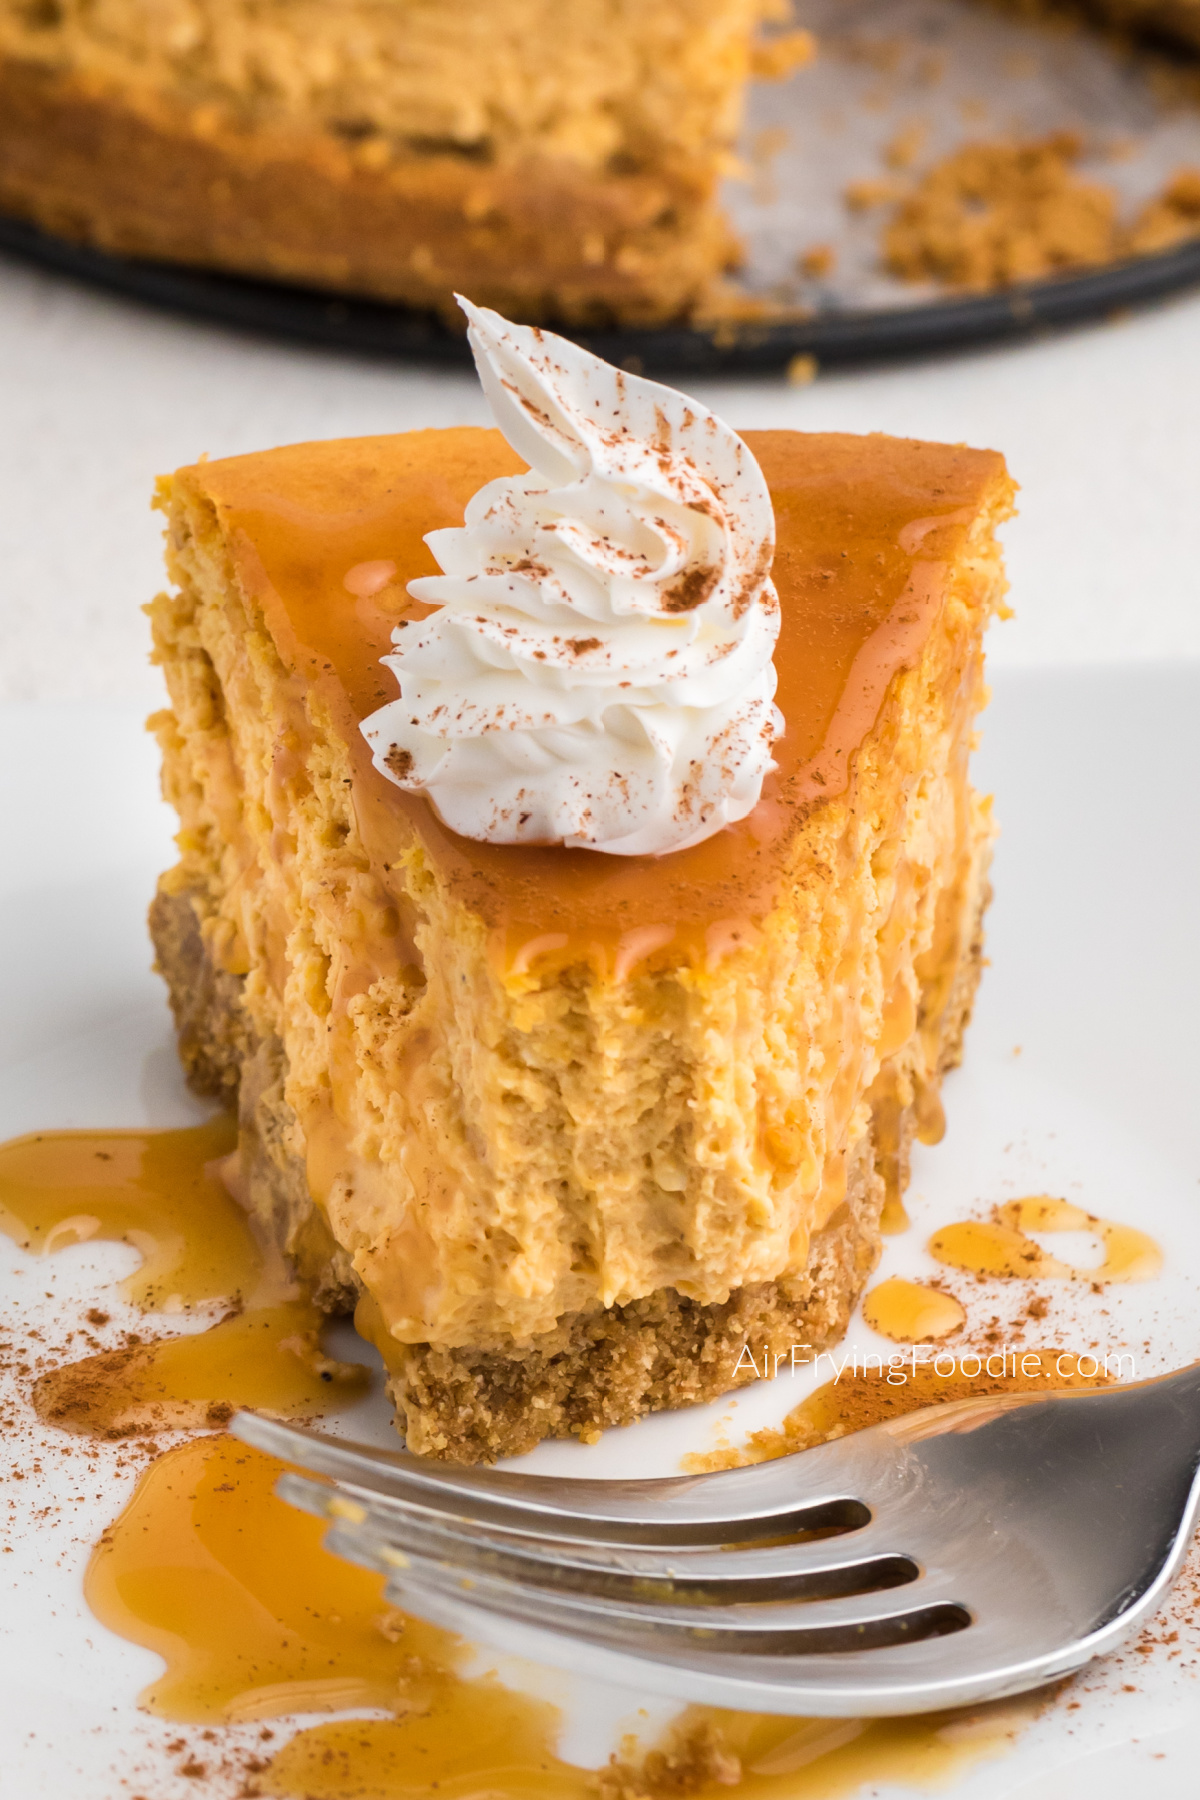 Slice of air fryer pumpkin cheesecake on a plate with a bite missing.